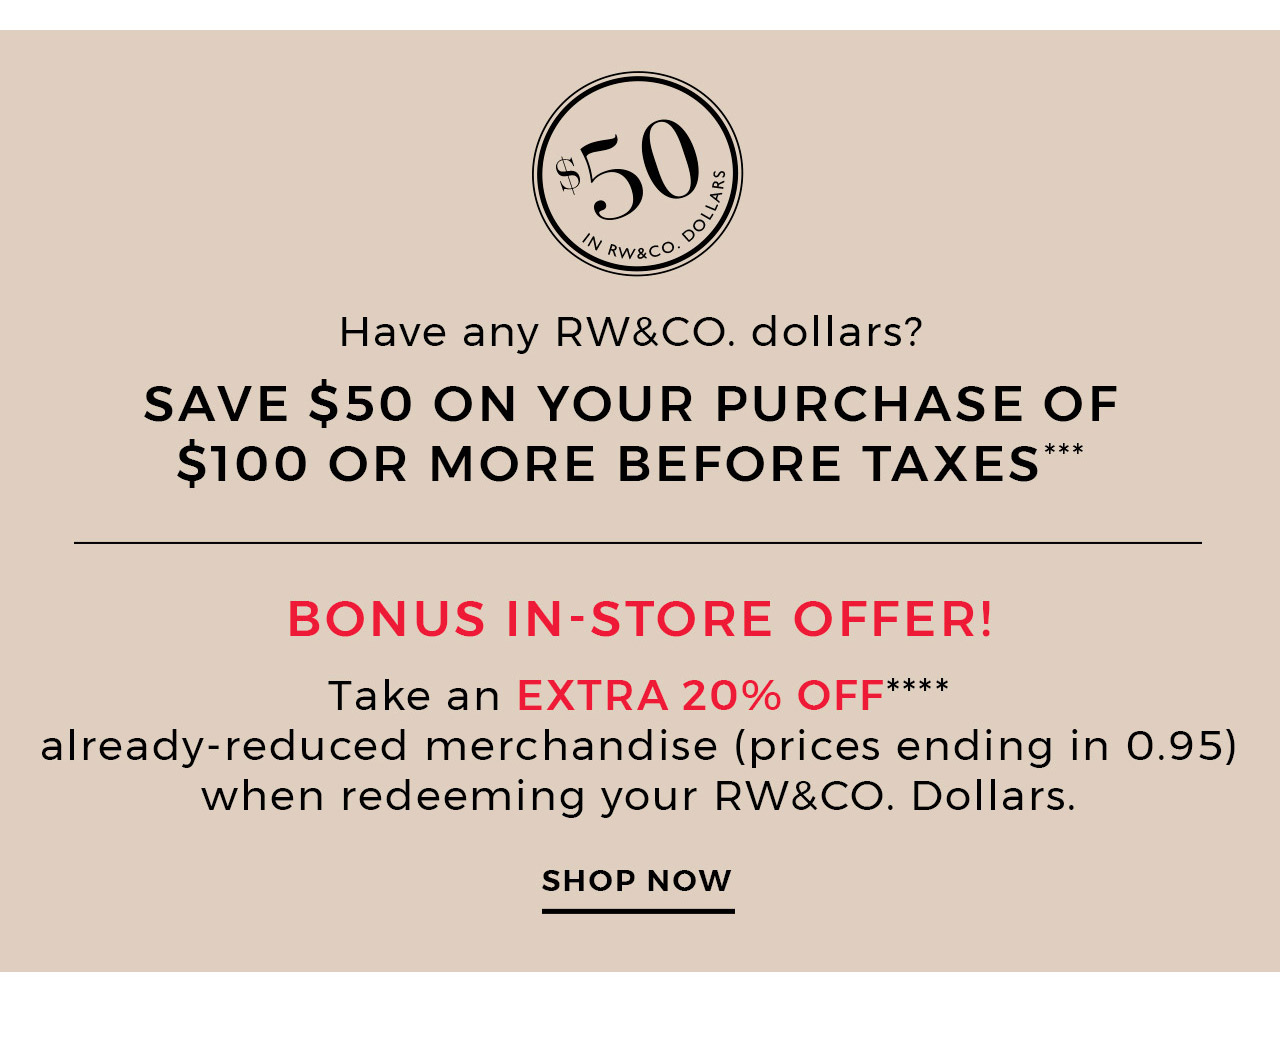 Have any RW&CO. dollars? We might have a few ideas on how to spend them